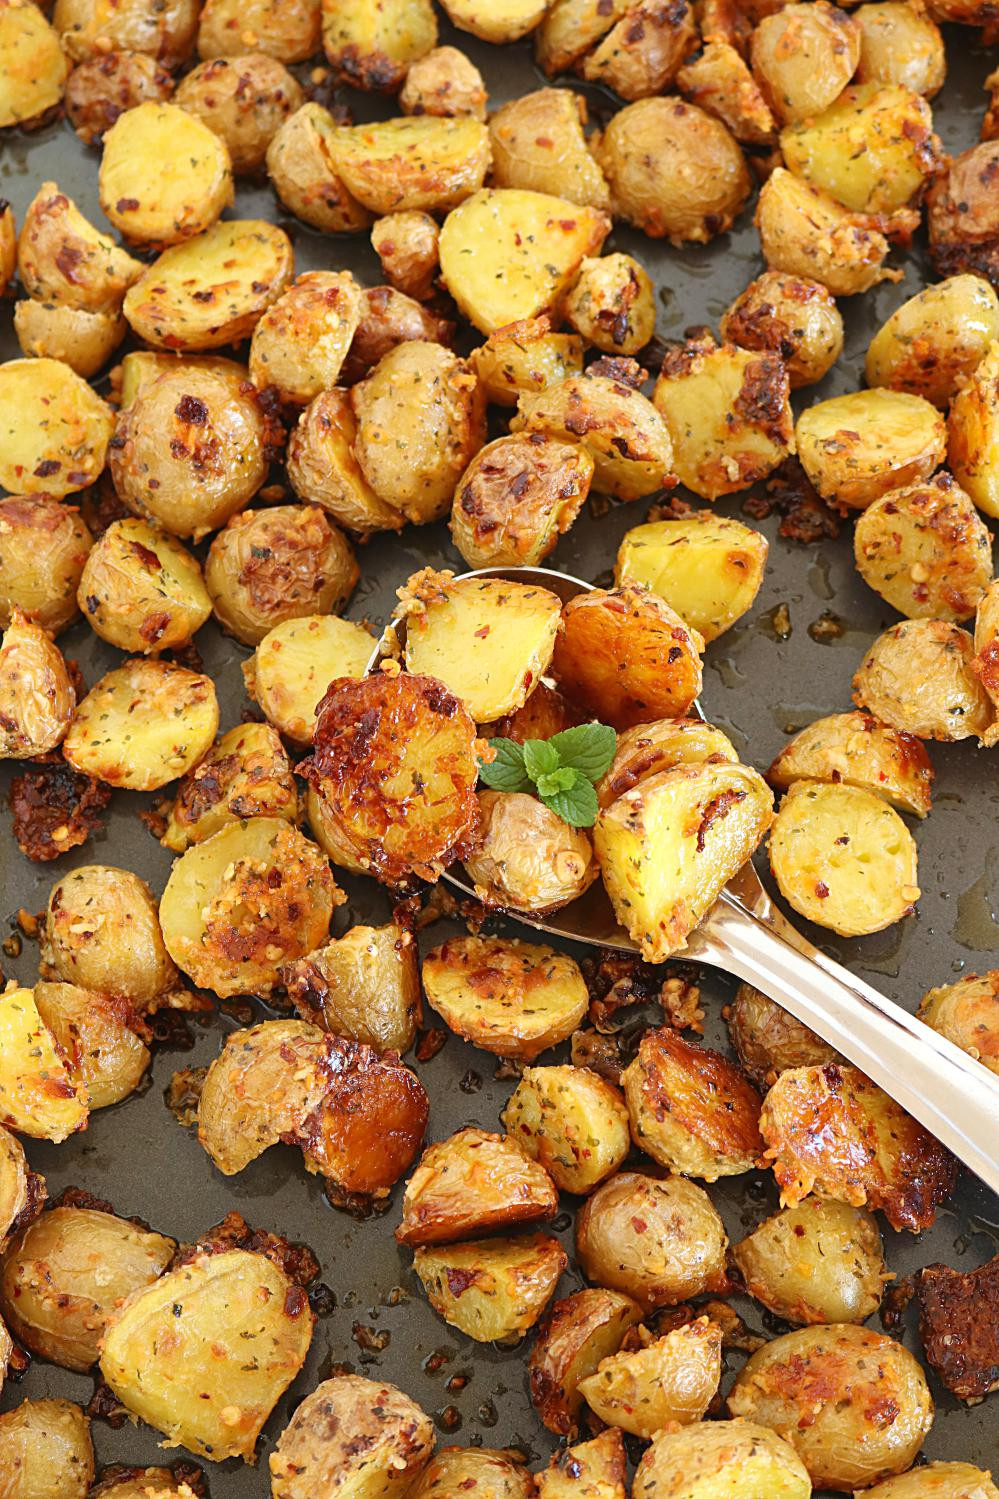 Bake A Potato In The Oven  Oven Roasted Potatoes Crispy Oven Roasted Potatoes how